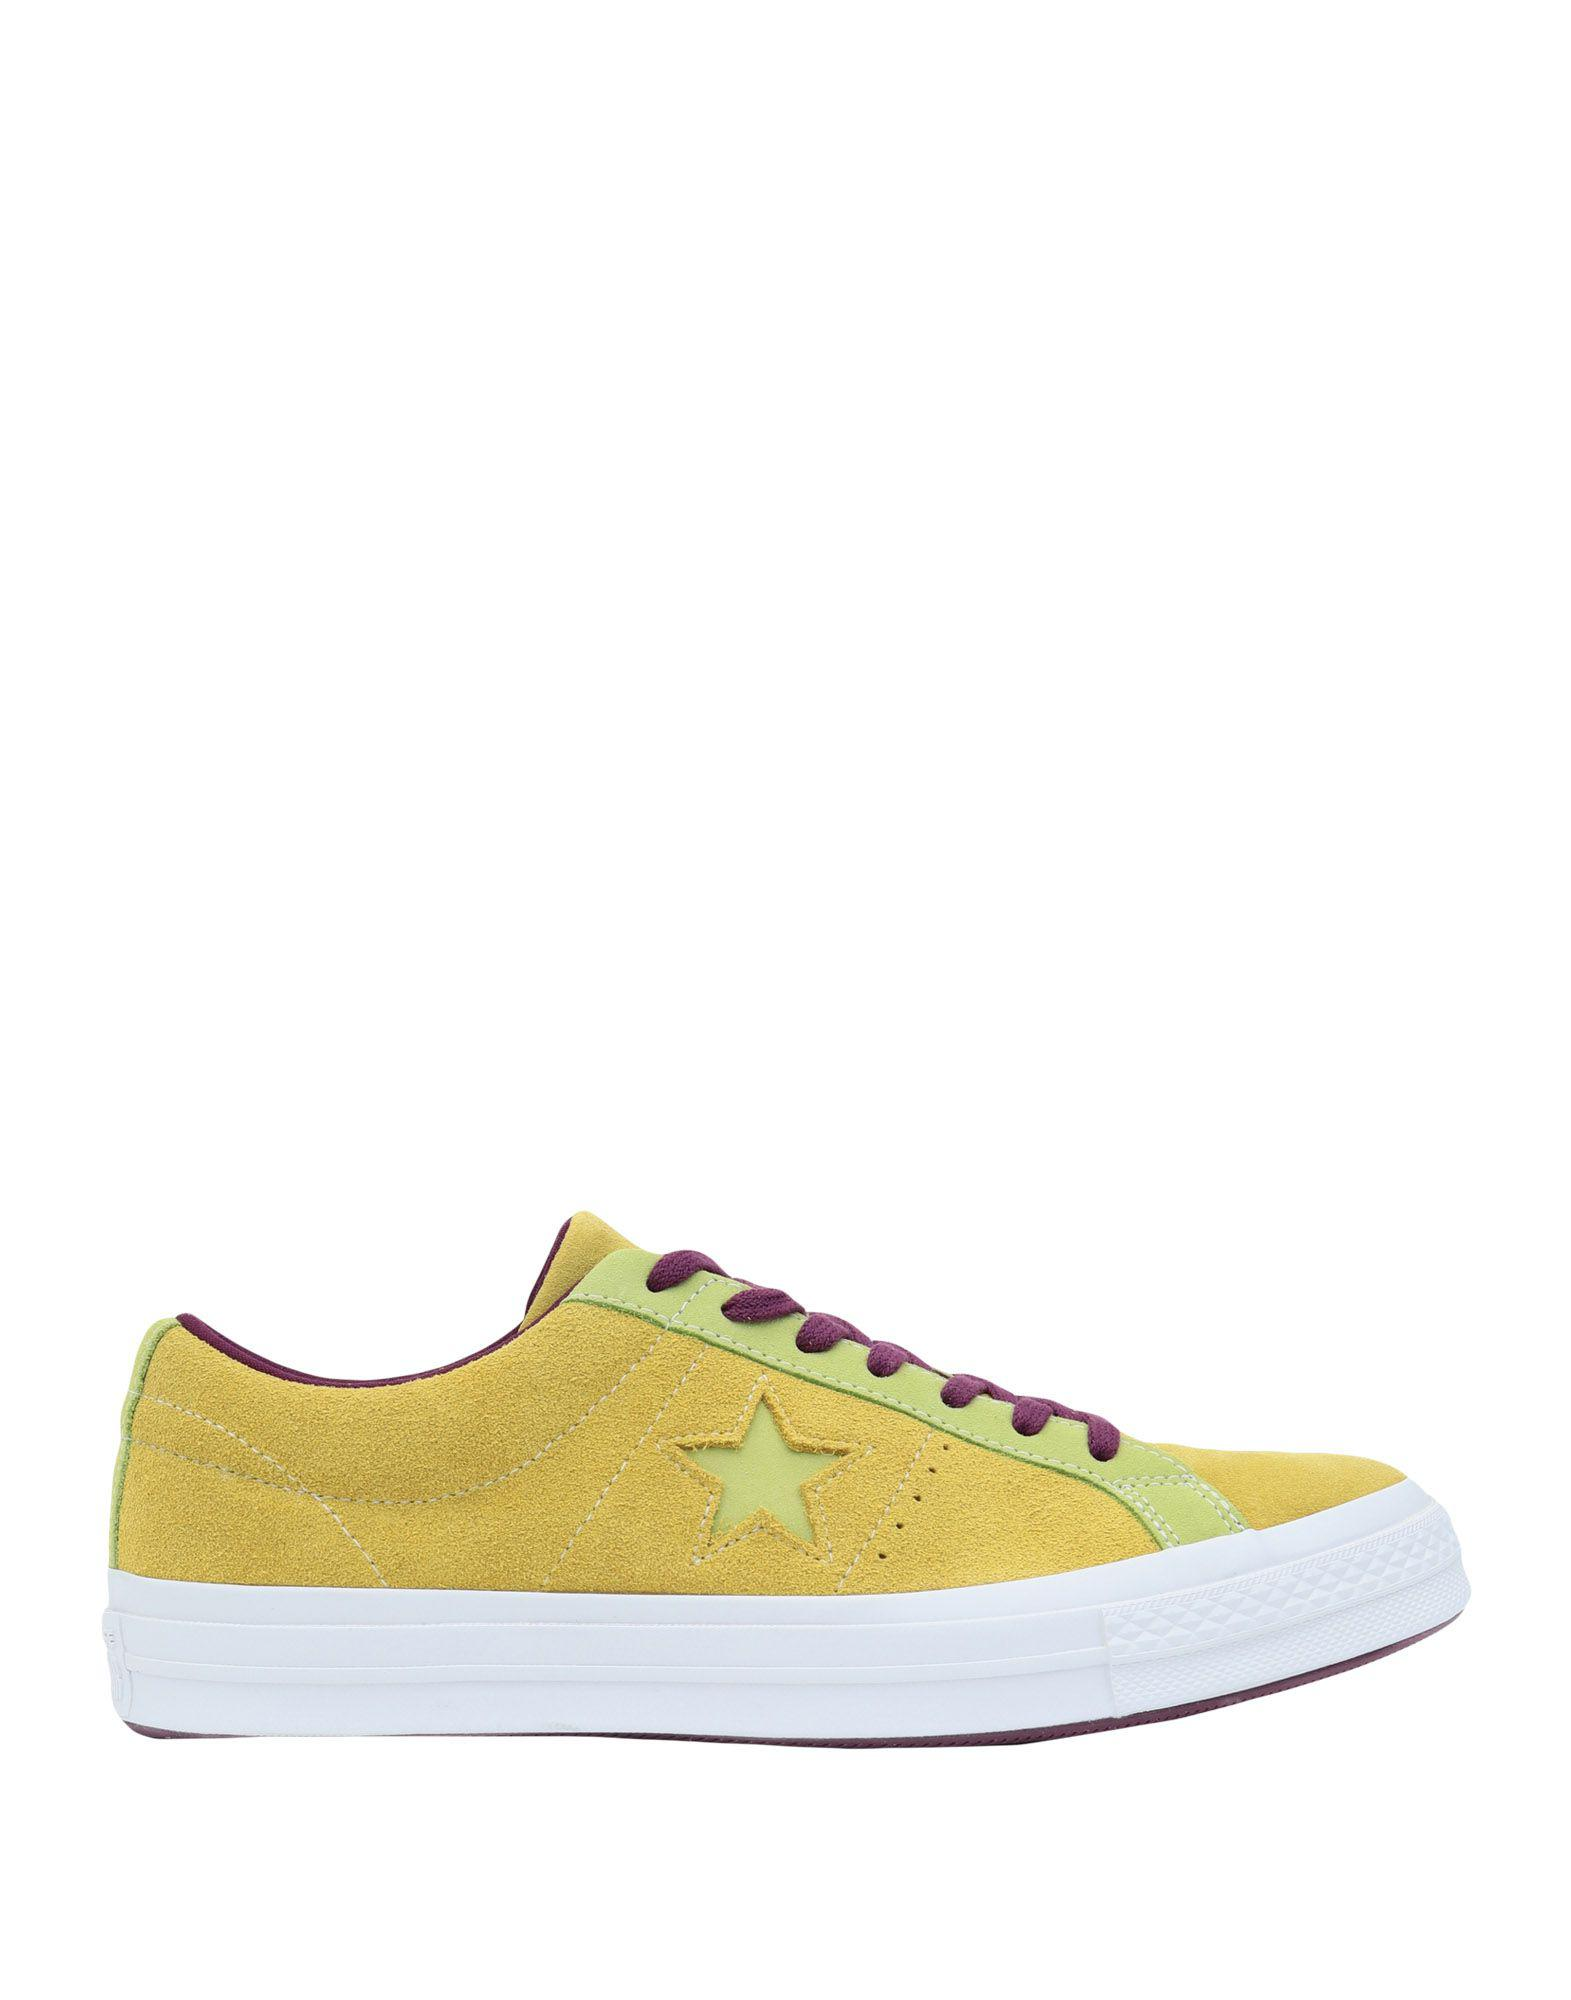 39f2769f9eb143 Converse Low-tops   Sneakers in Yellow for Men - Lyst